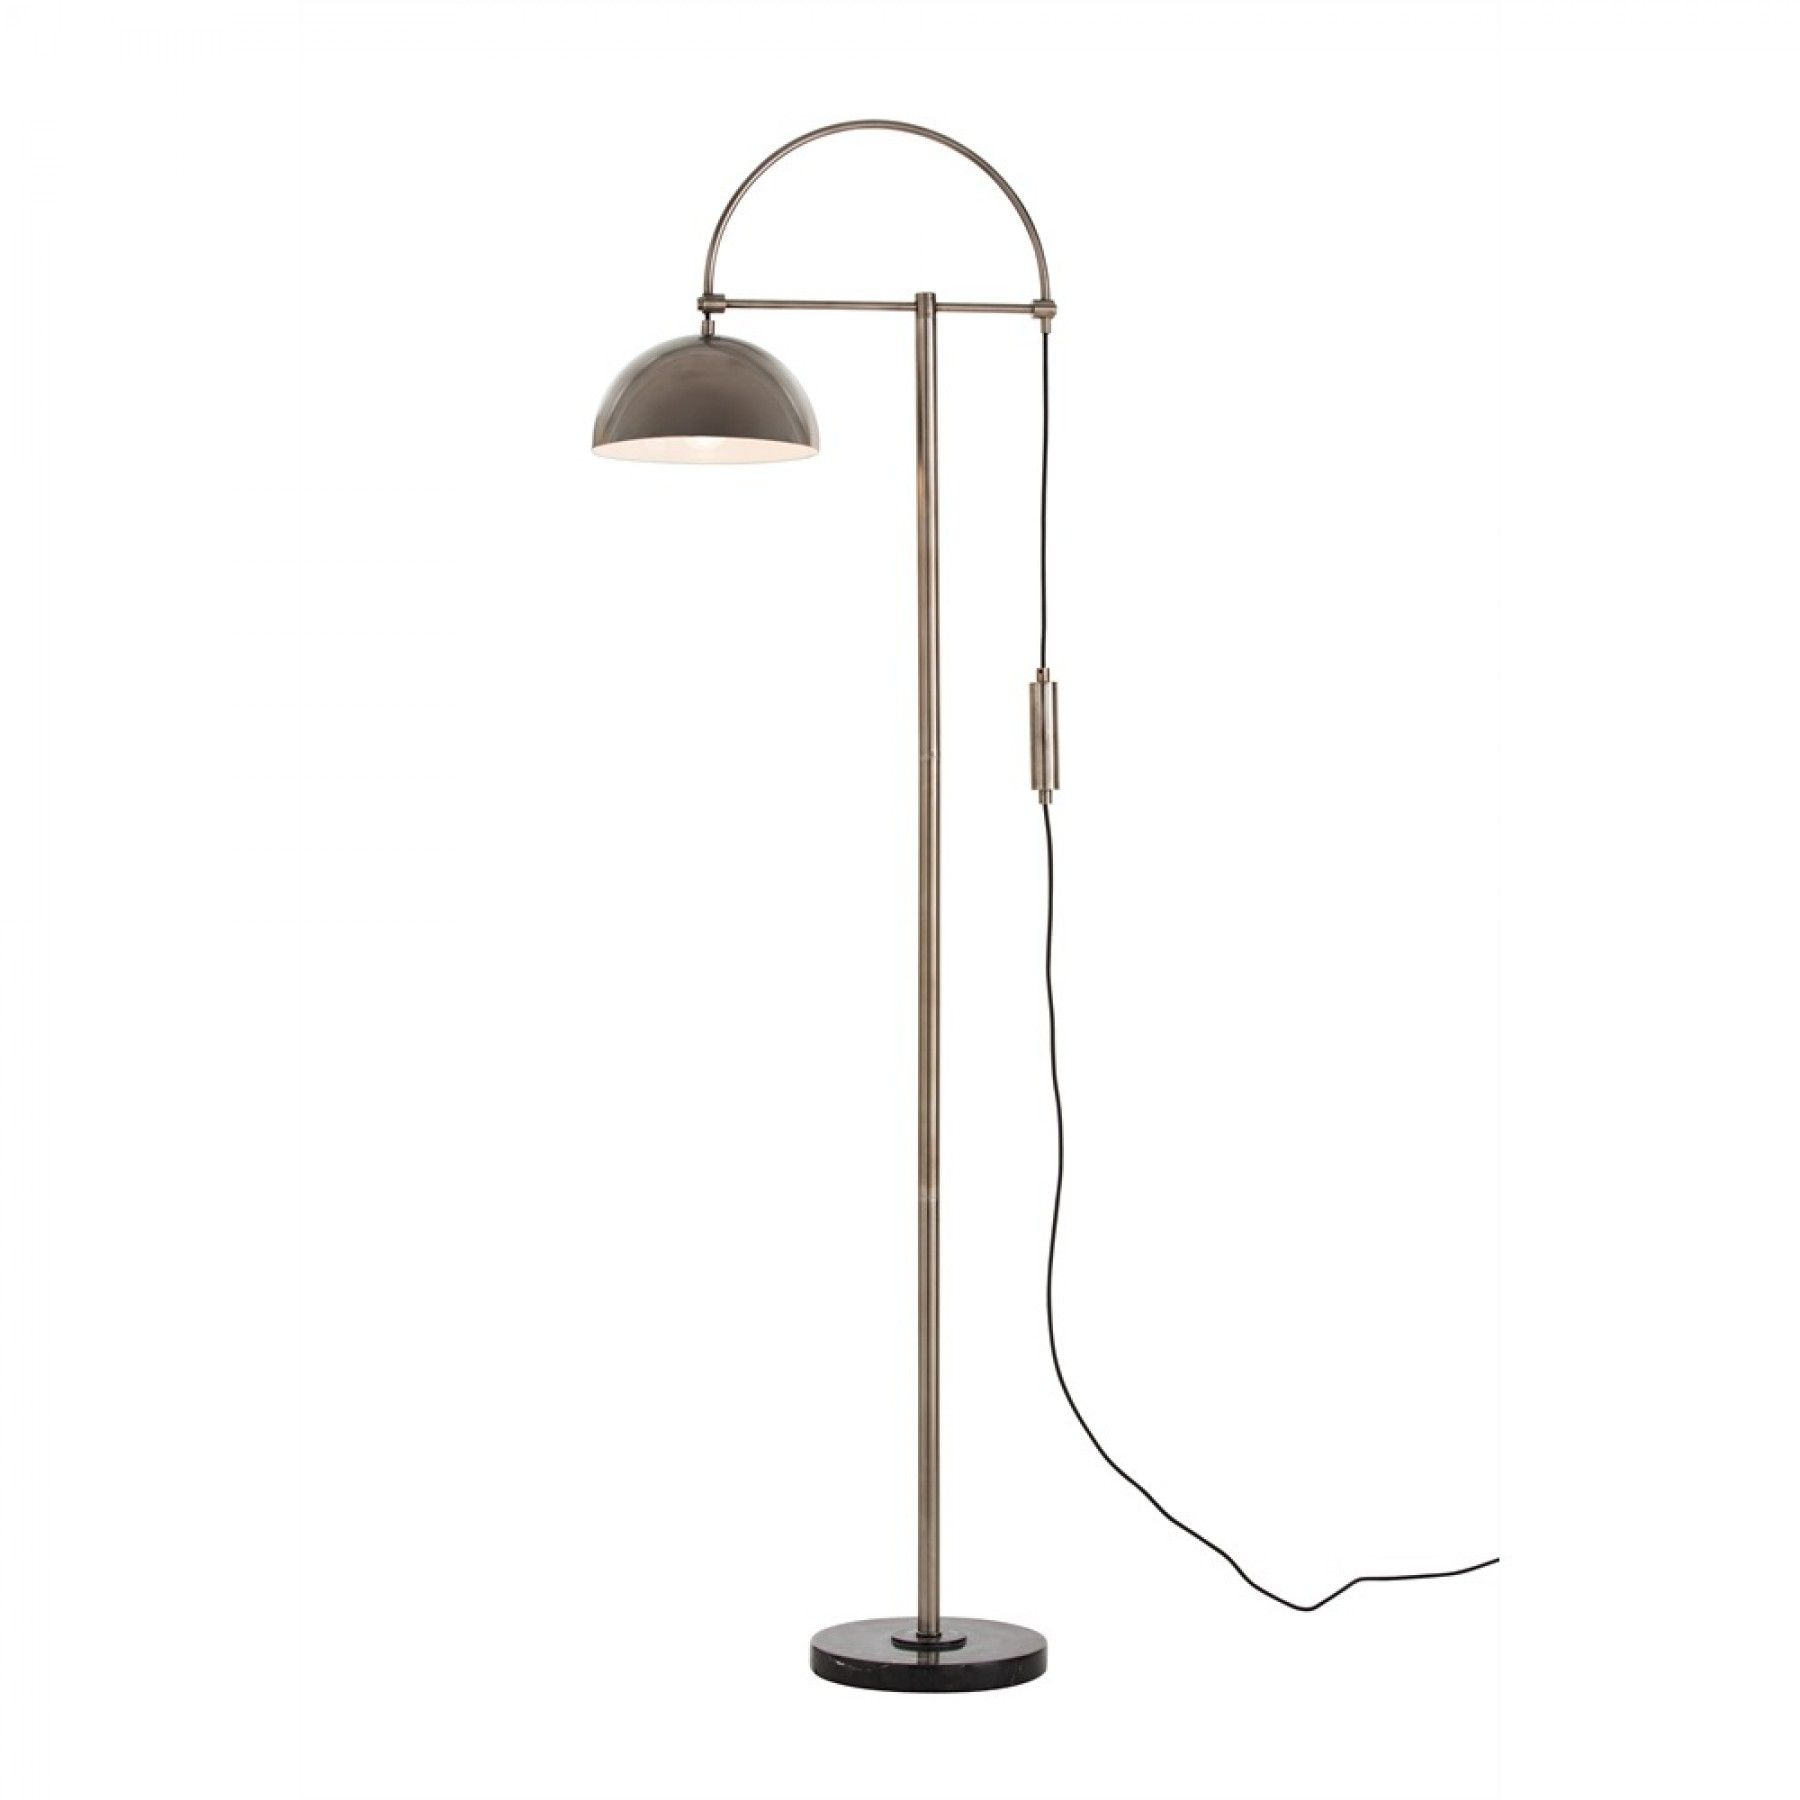 Jillian floor lamp dibernardo loft pinterest floor lamp